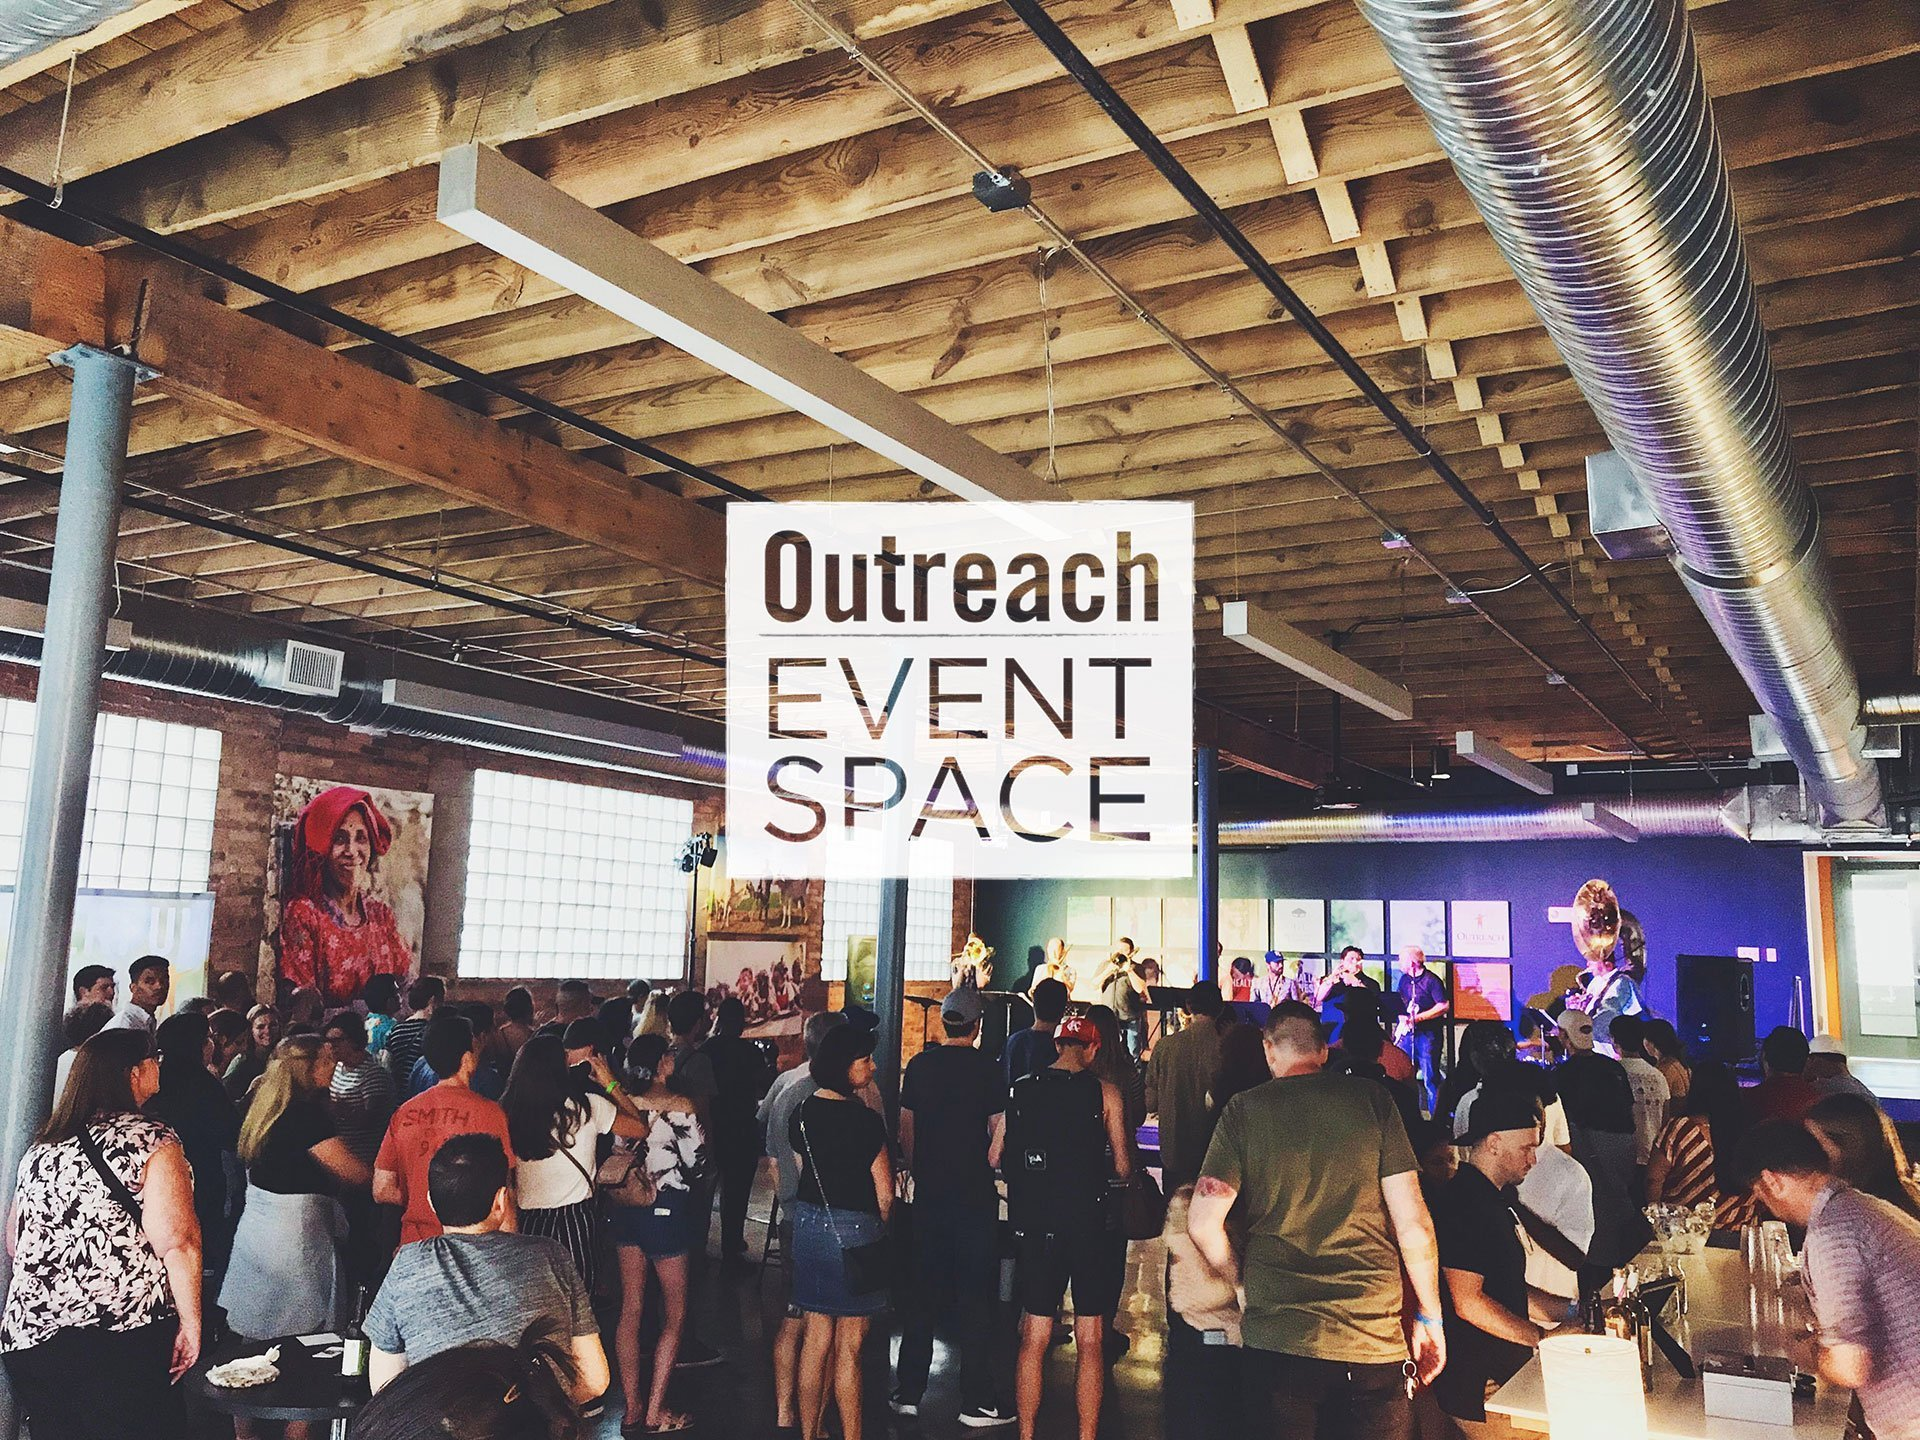 Outreach Event Space